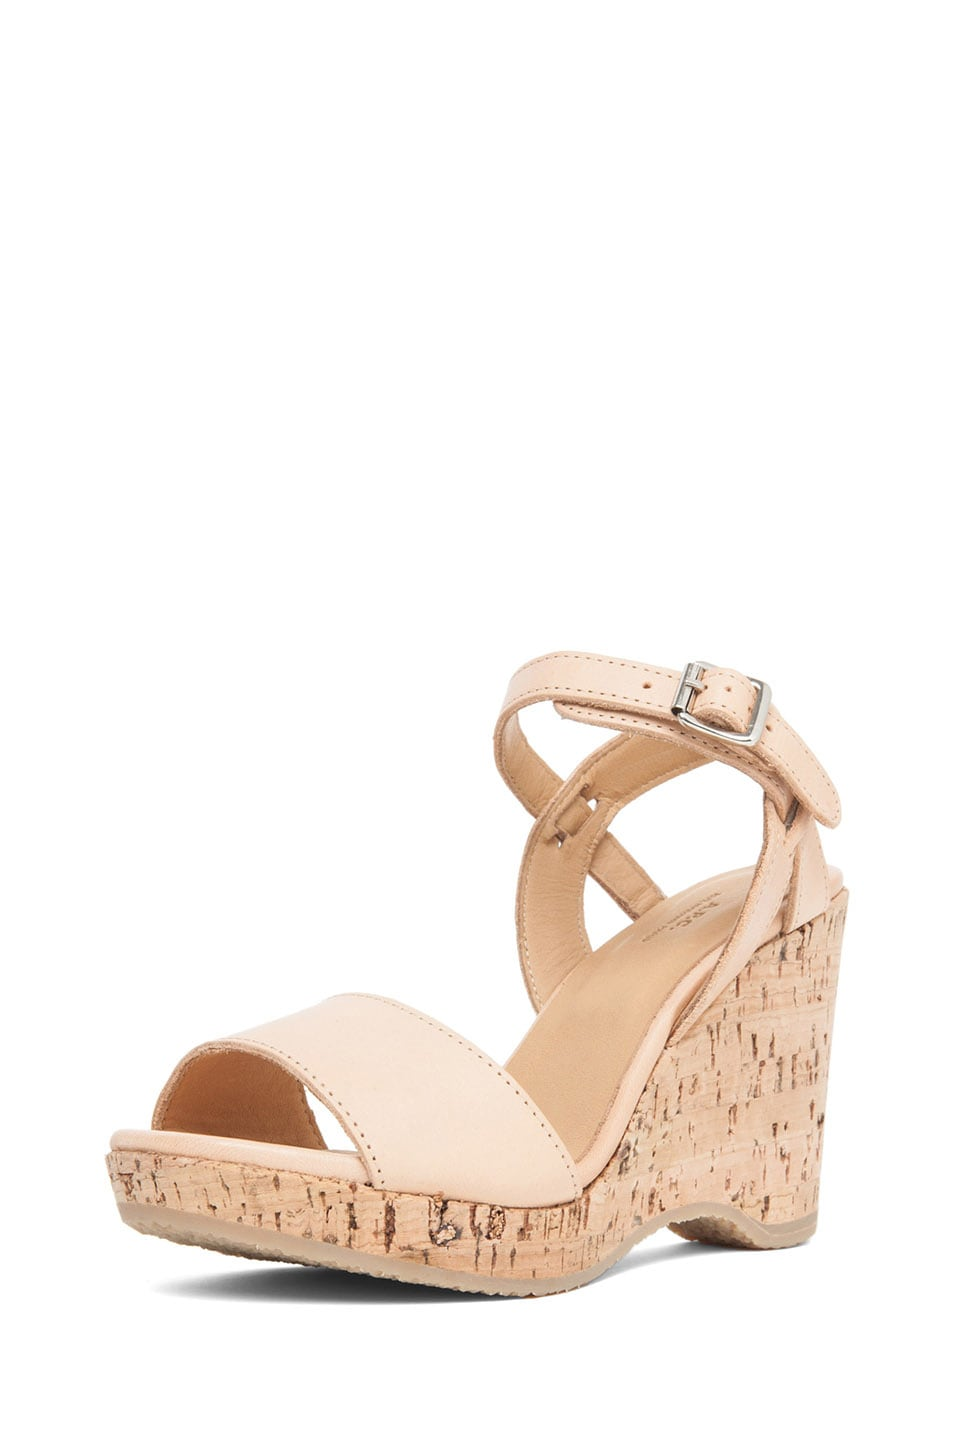 Image 2 of A.P.C. Lisse Calfskin Leather Sandals in Beige Rose